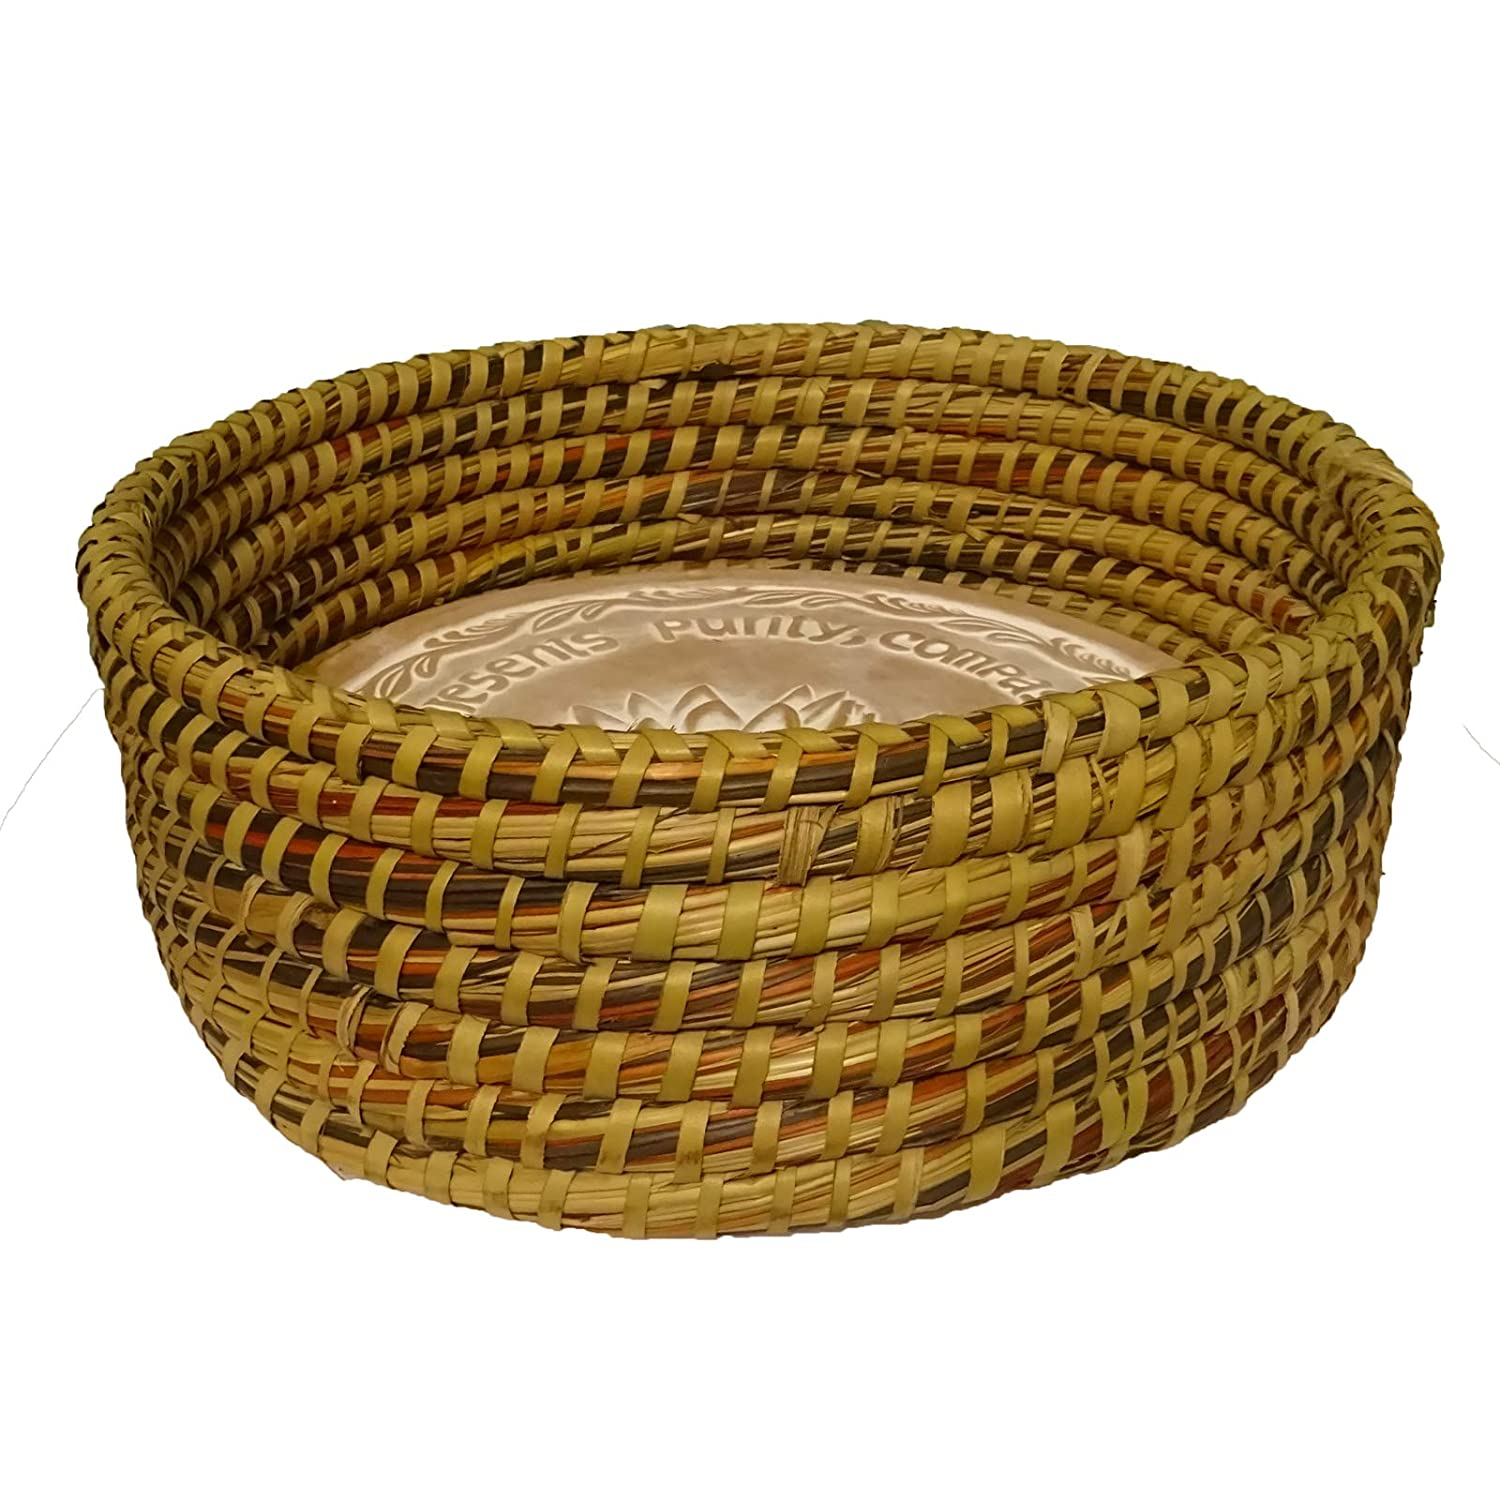 Warming Bread Basket with Lotus Warmer Tile Stone Hand Woven For Rolls Appetizers by The Crabby Nook (Autumn Spice)